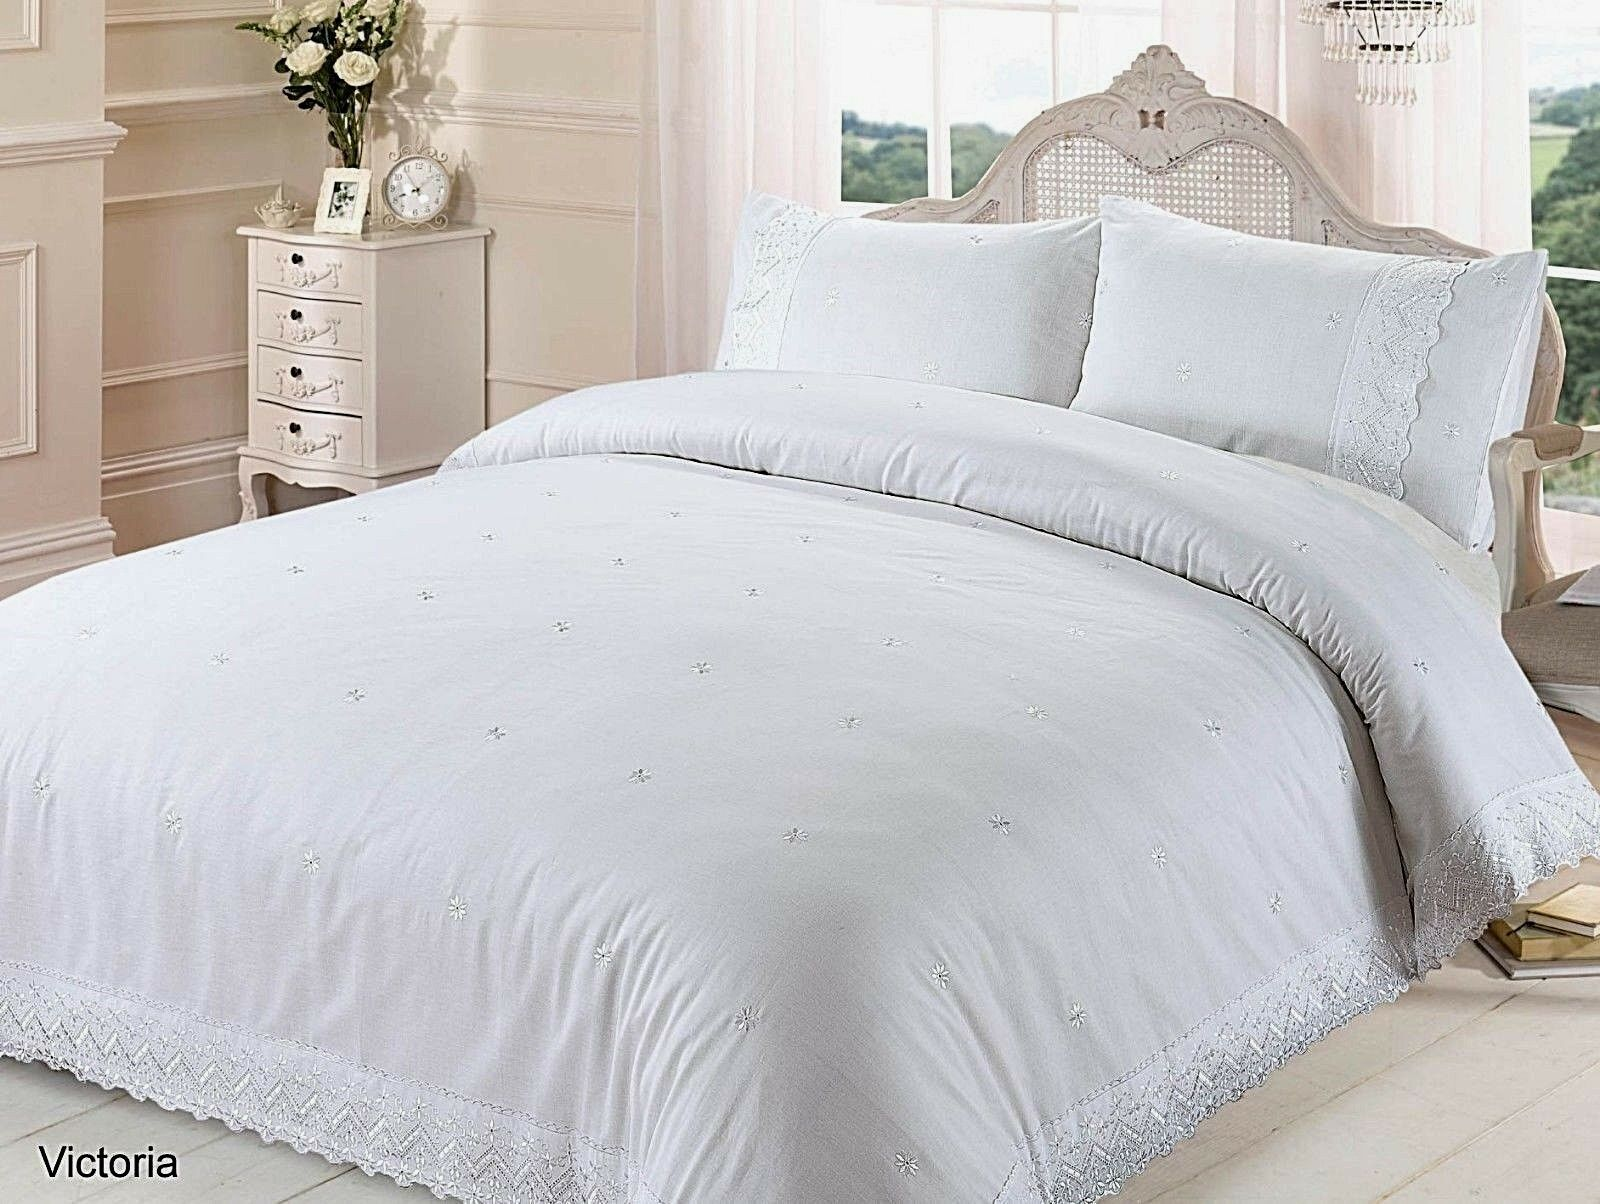 Victoria White Lace Trim Quilt Cover Floral Embroidery Luxury Bedding Set